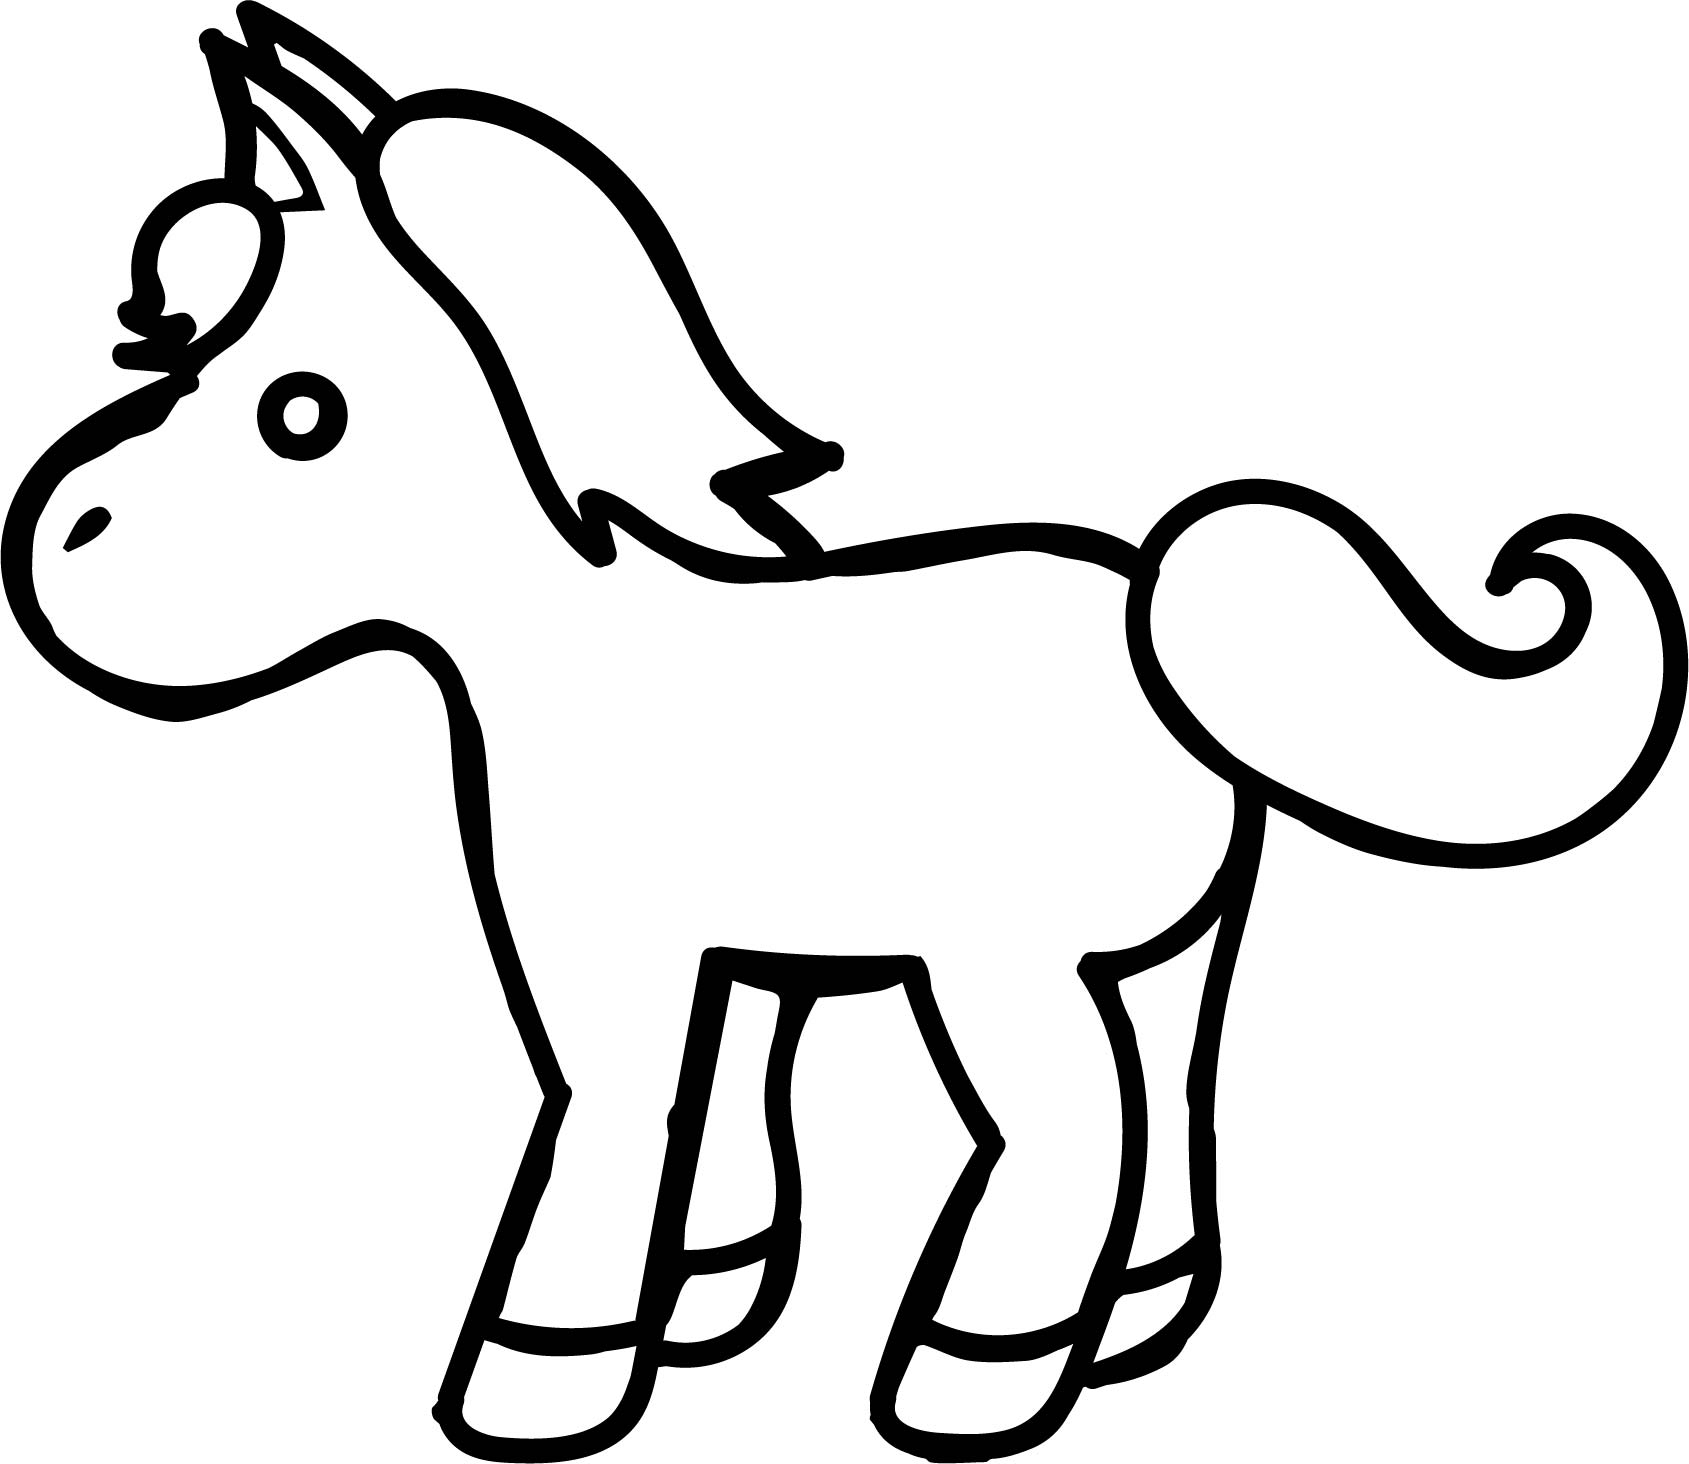 horse pages to color - small cartoon horse coloring page